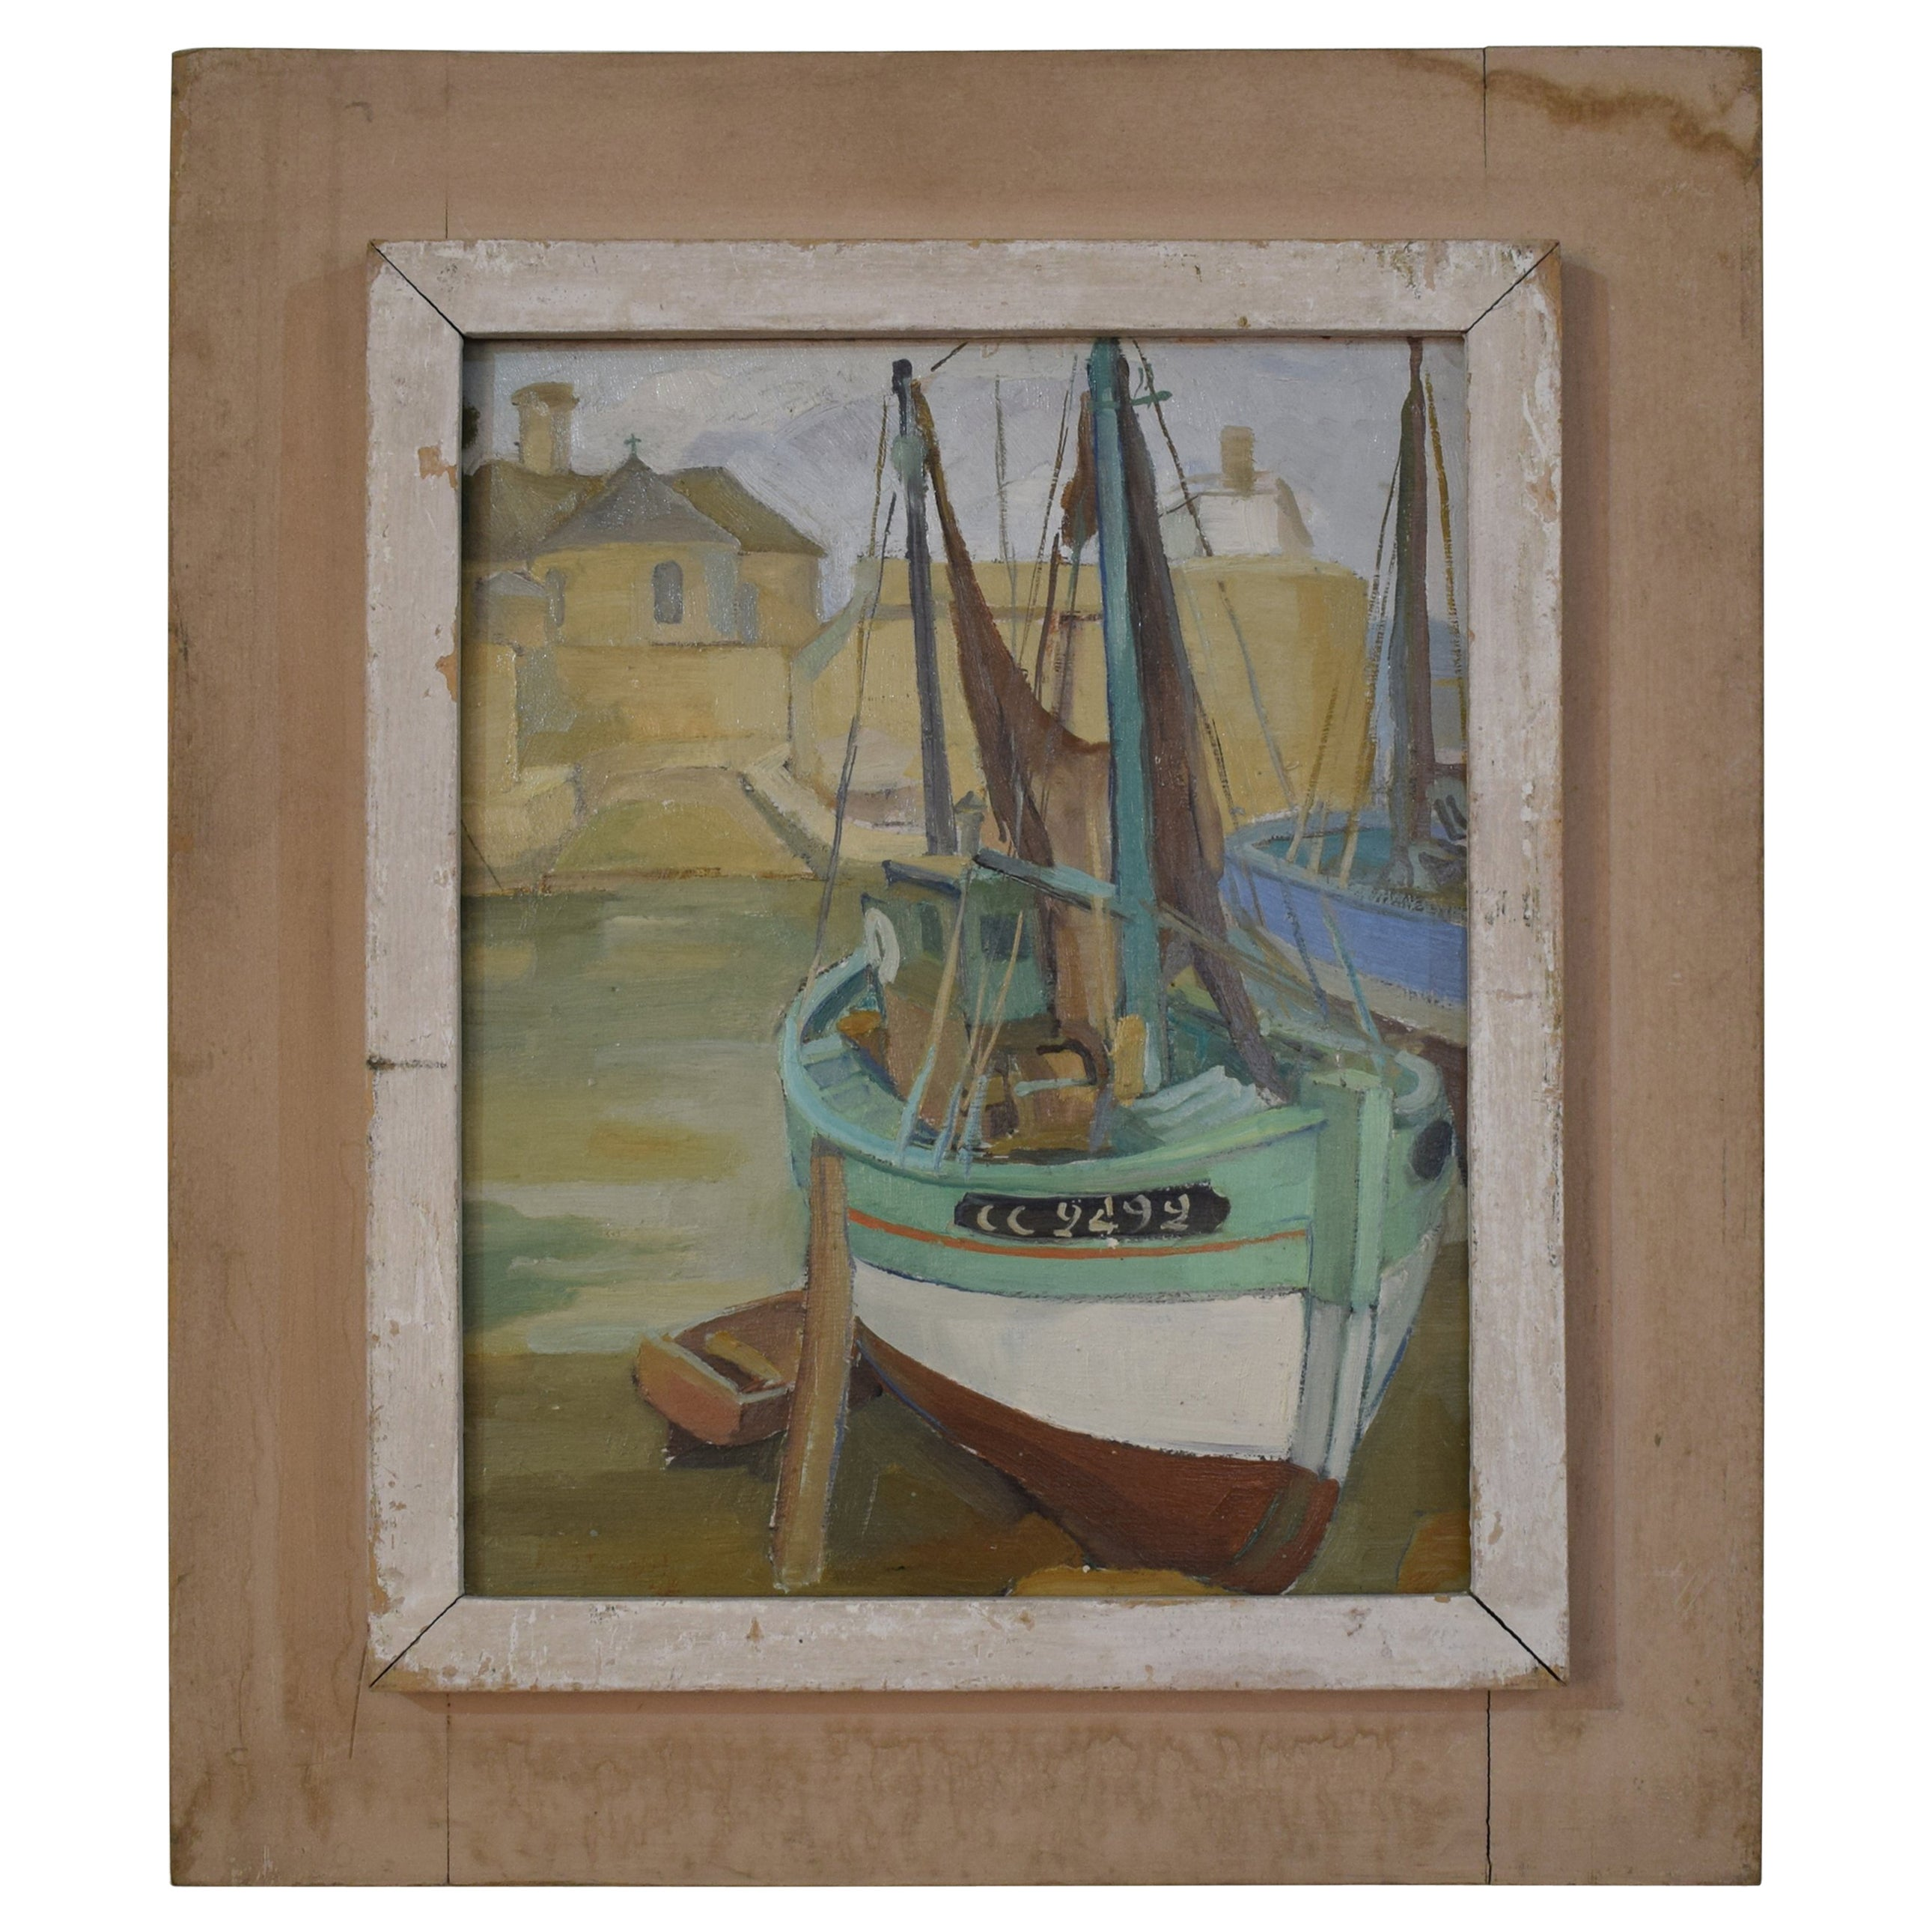 1940s French Oil Painting with Harbor Scene